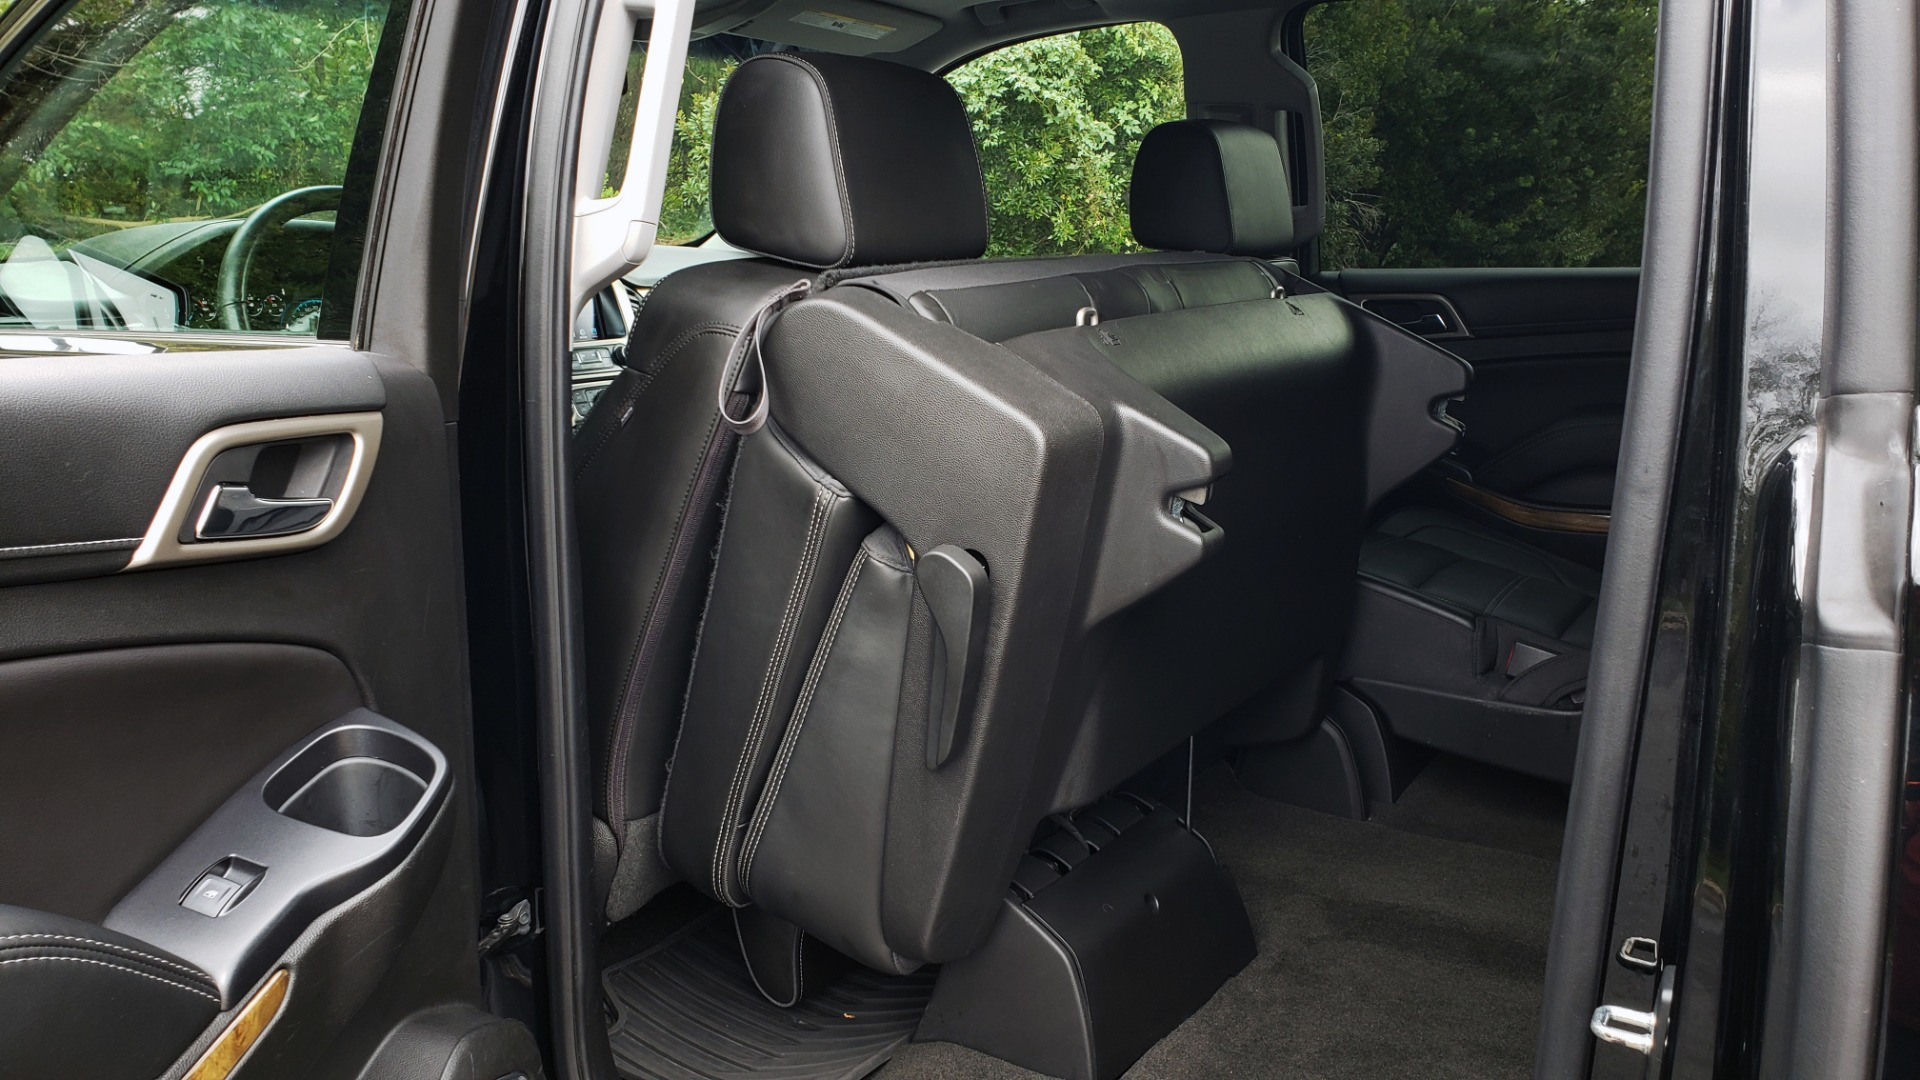 Used 2017 GMC YUKON XL DENALI 4WD / NAV / SUNROOF / ENT / 3-ROWS / BOSE / REARVIEW for sale Sold at Formula Imports in Charlotte NC 28227 69